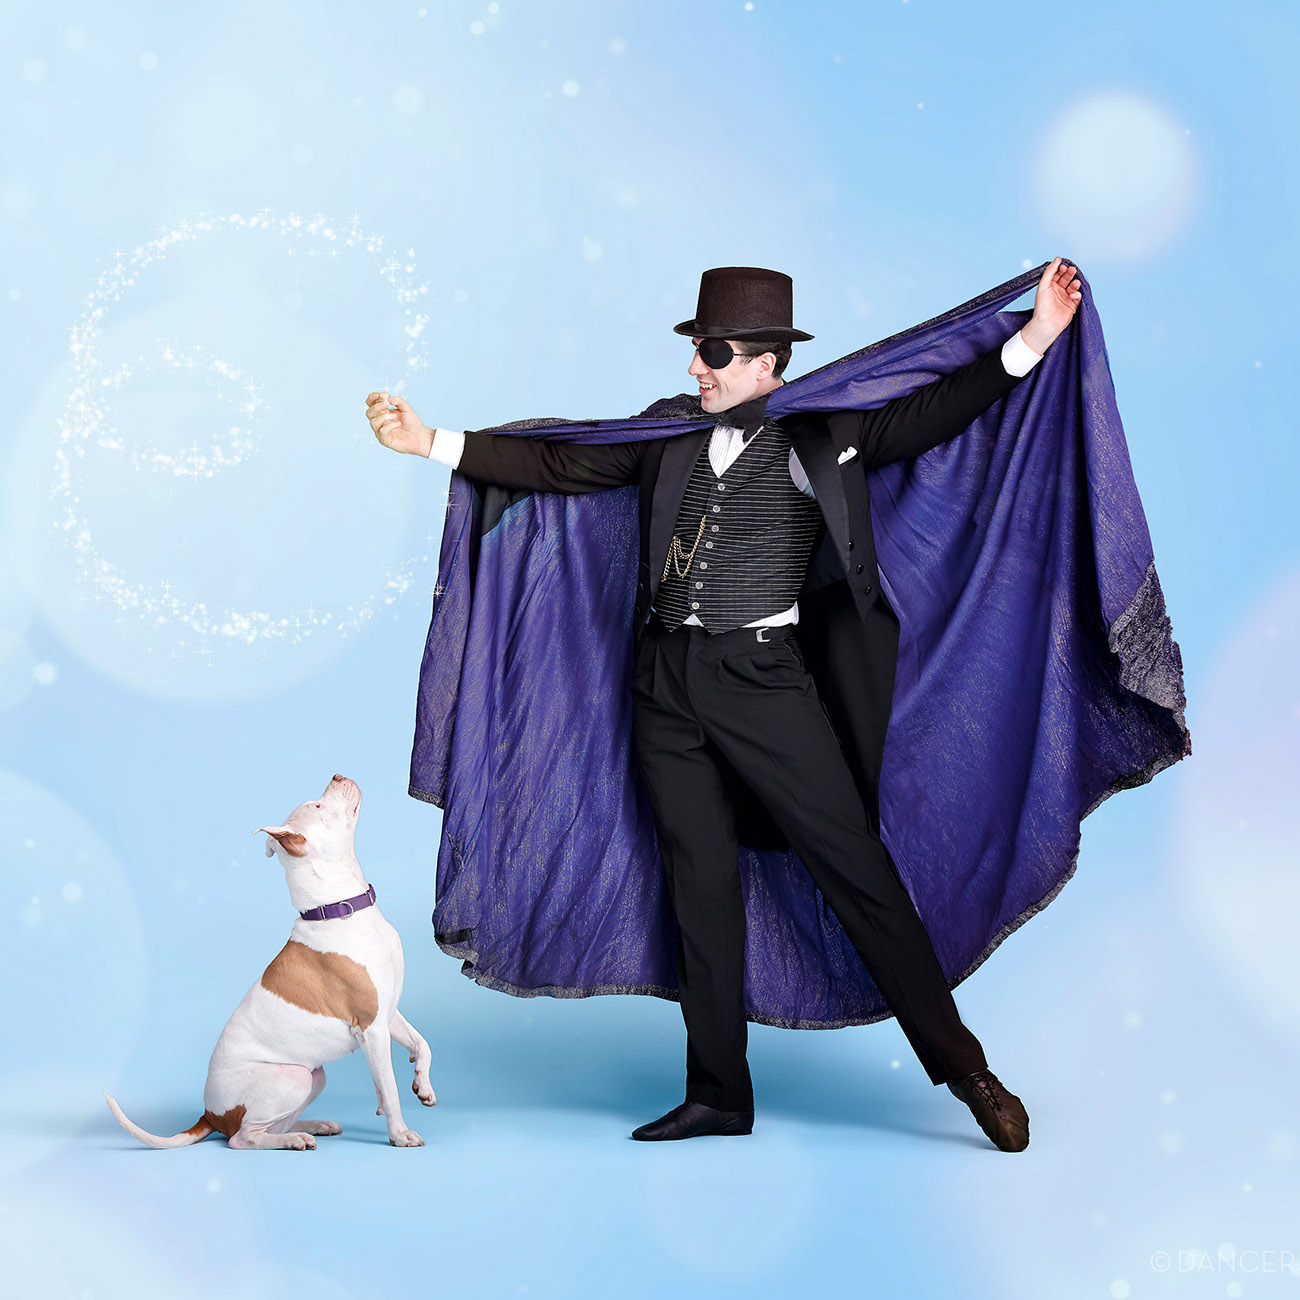 dancer-with-dog